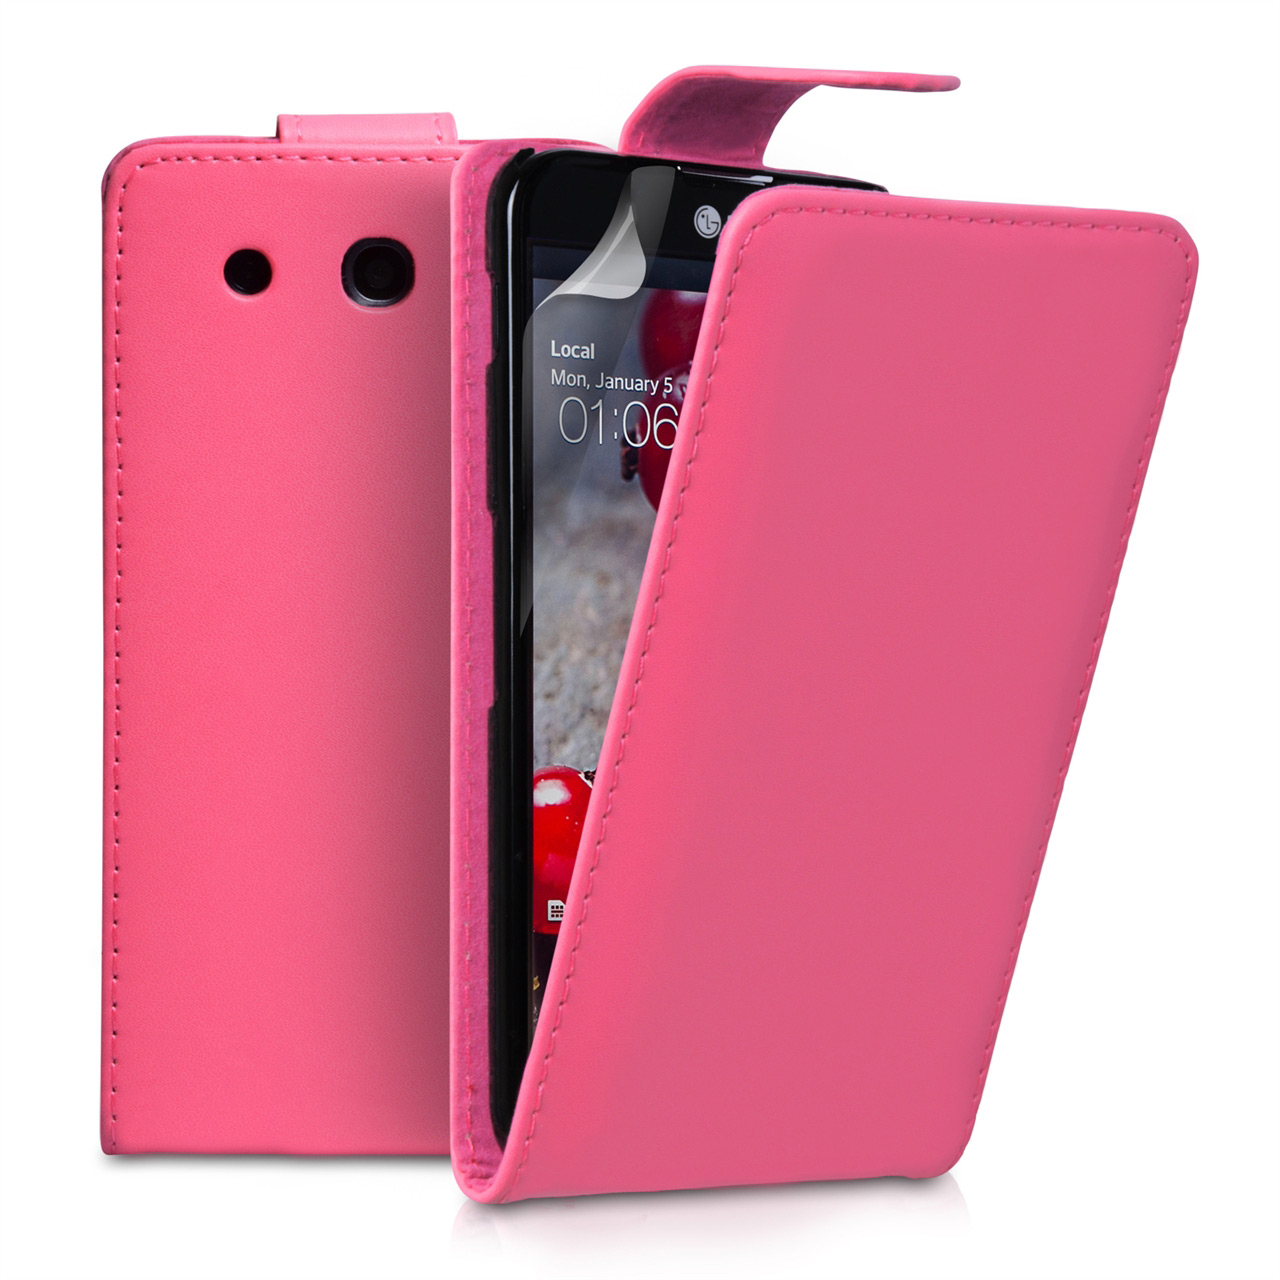 YouSave Accessories LG G Pro Leather Effect Flip Case - Hot Pink